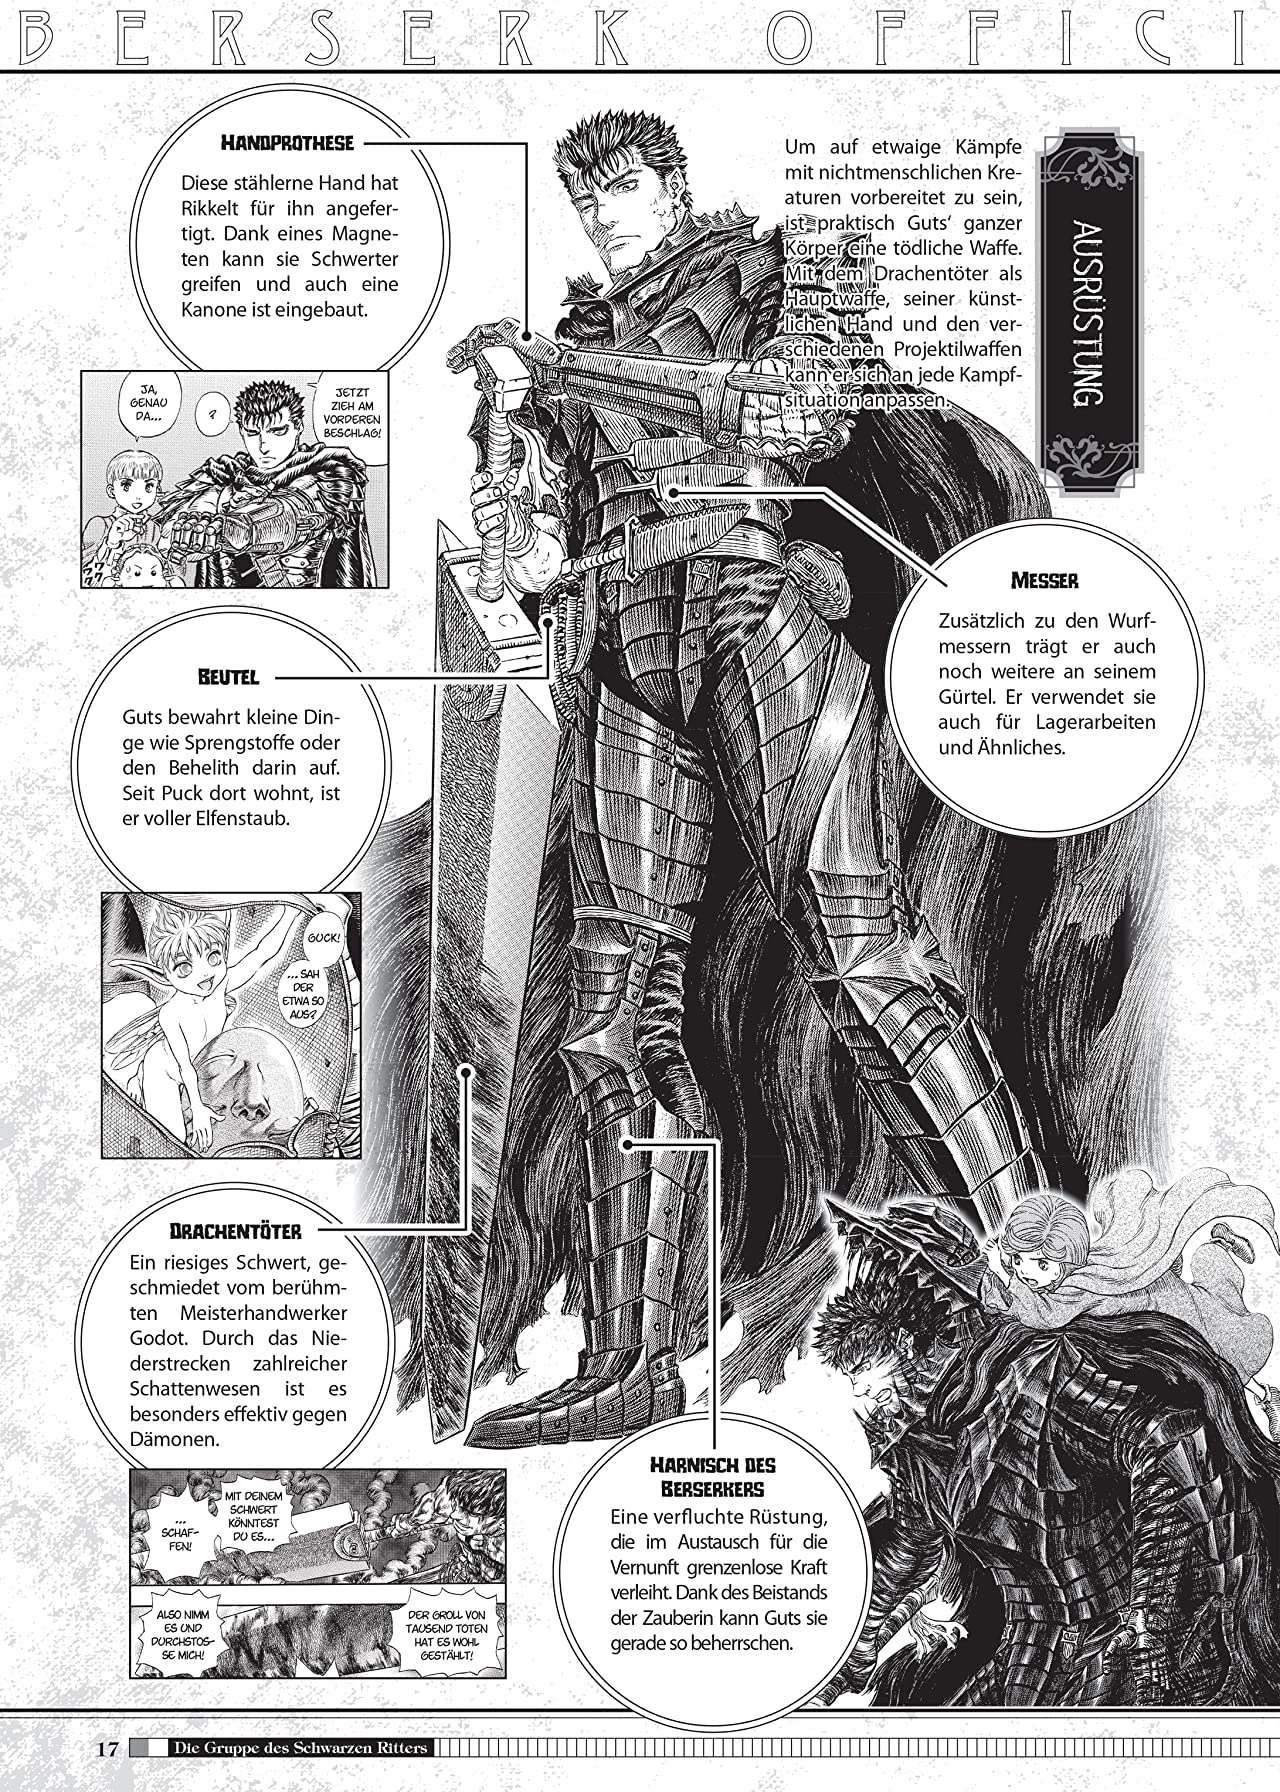 Berserk Official Guide Book - Das offizielle Kompendium Vol. 1